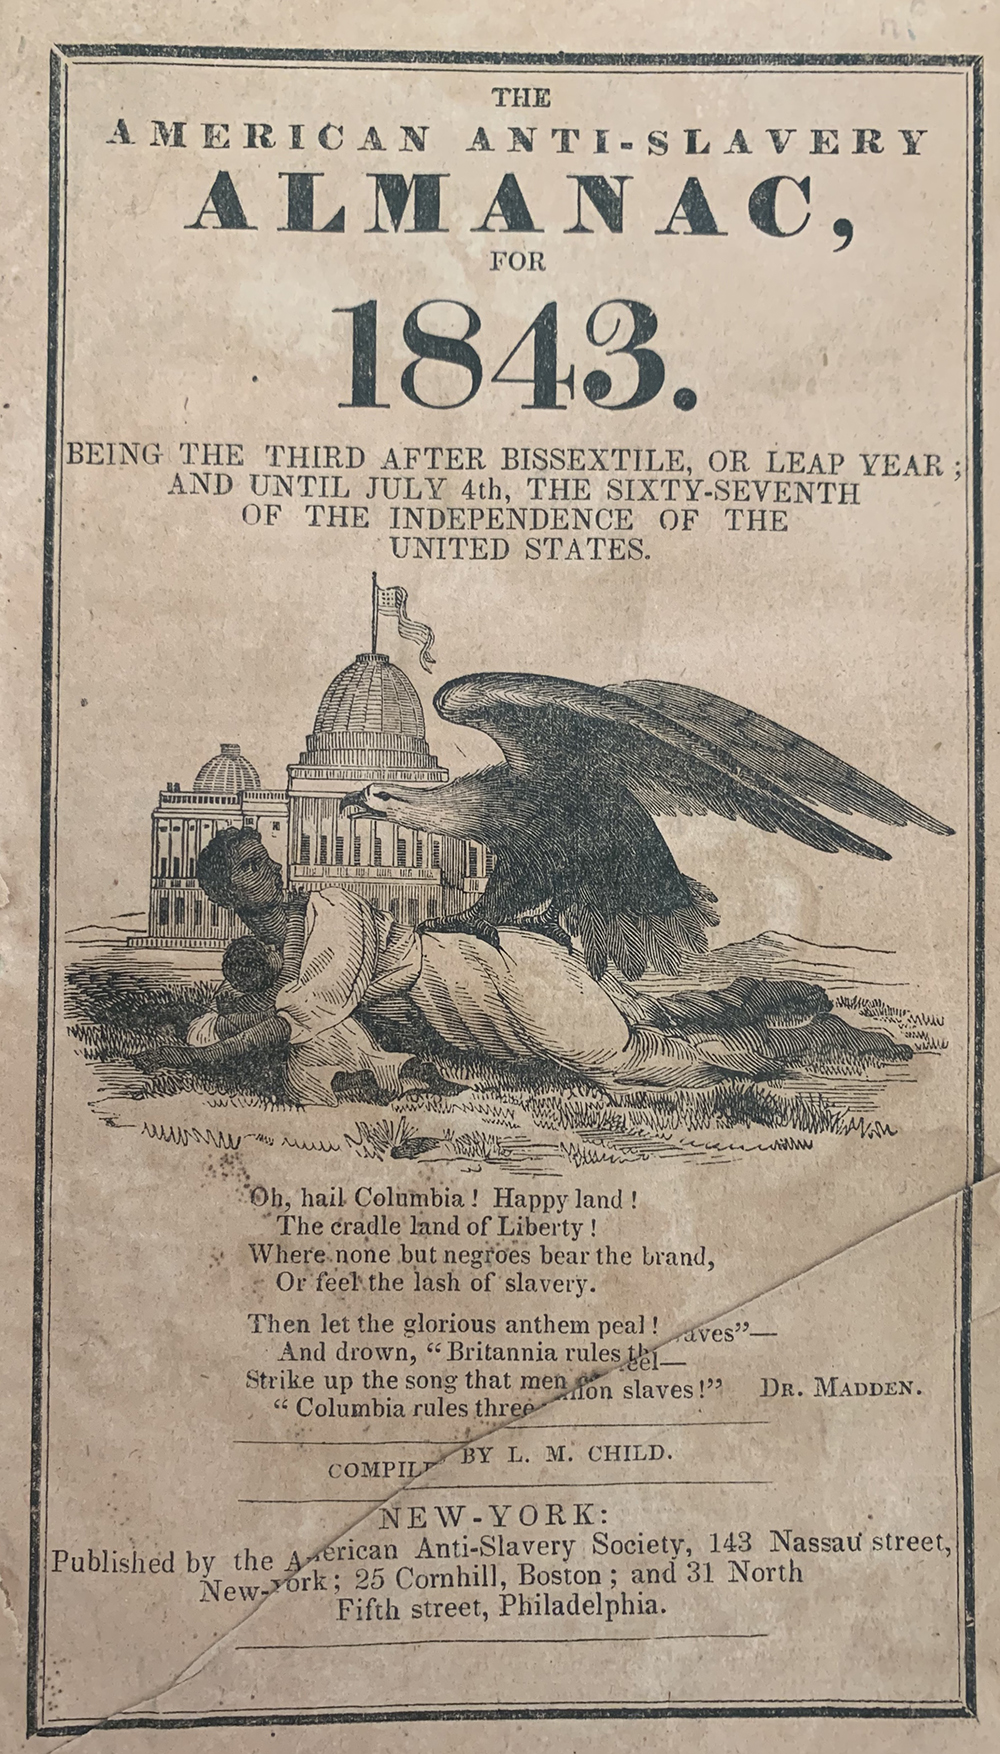 Cover of The American Anti-Slavery Almanac for 1843. Wikimedia Commons.